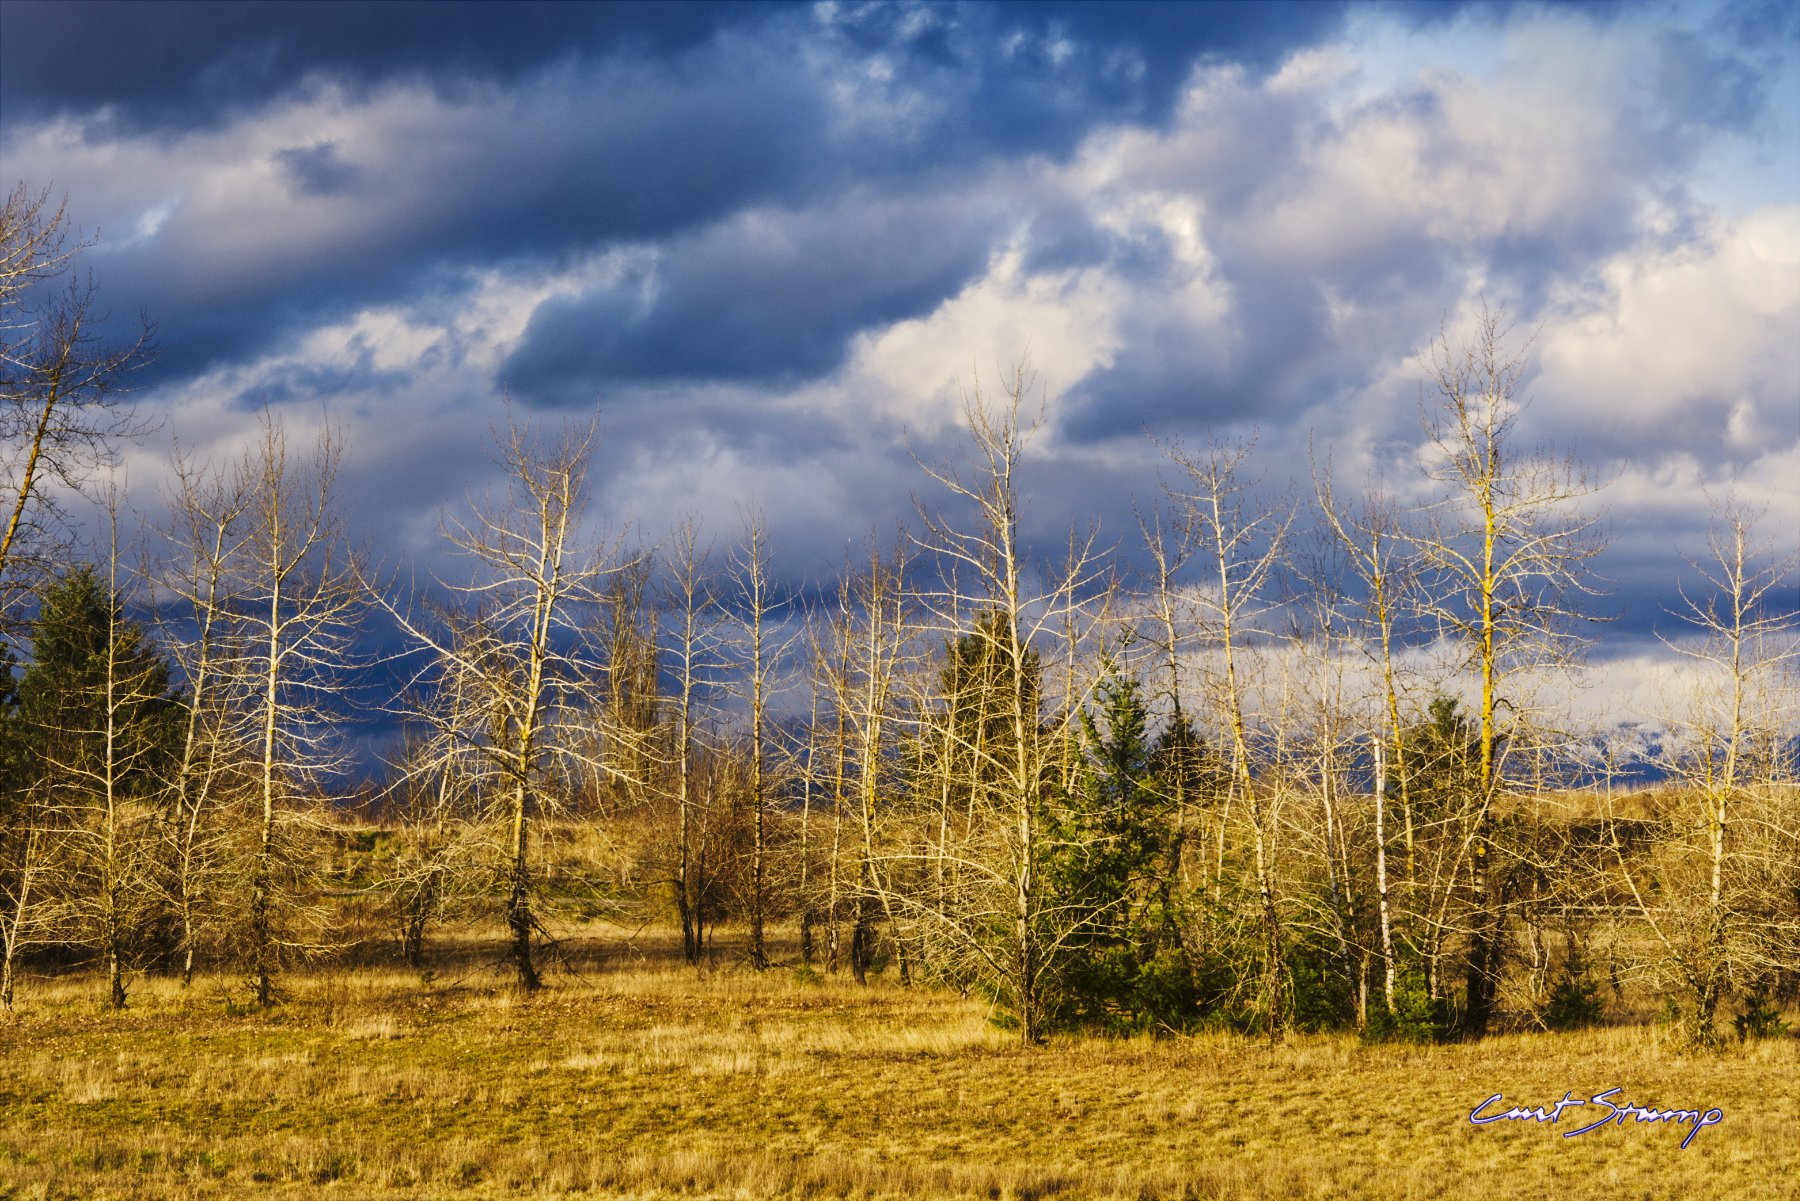 Photo of golden trees and field against a cloudy blue sky. Location: Powell Butte, Portland, Oregon.